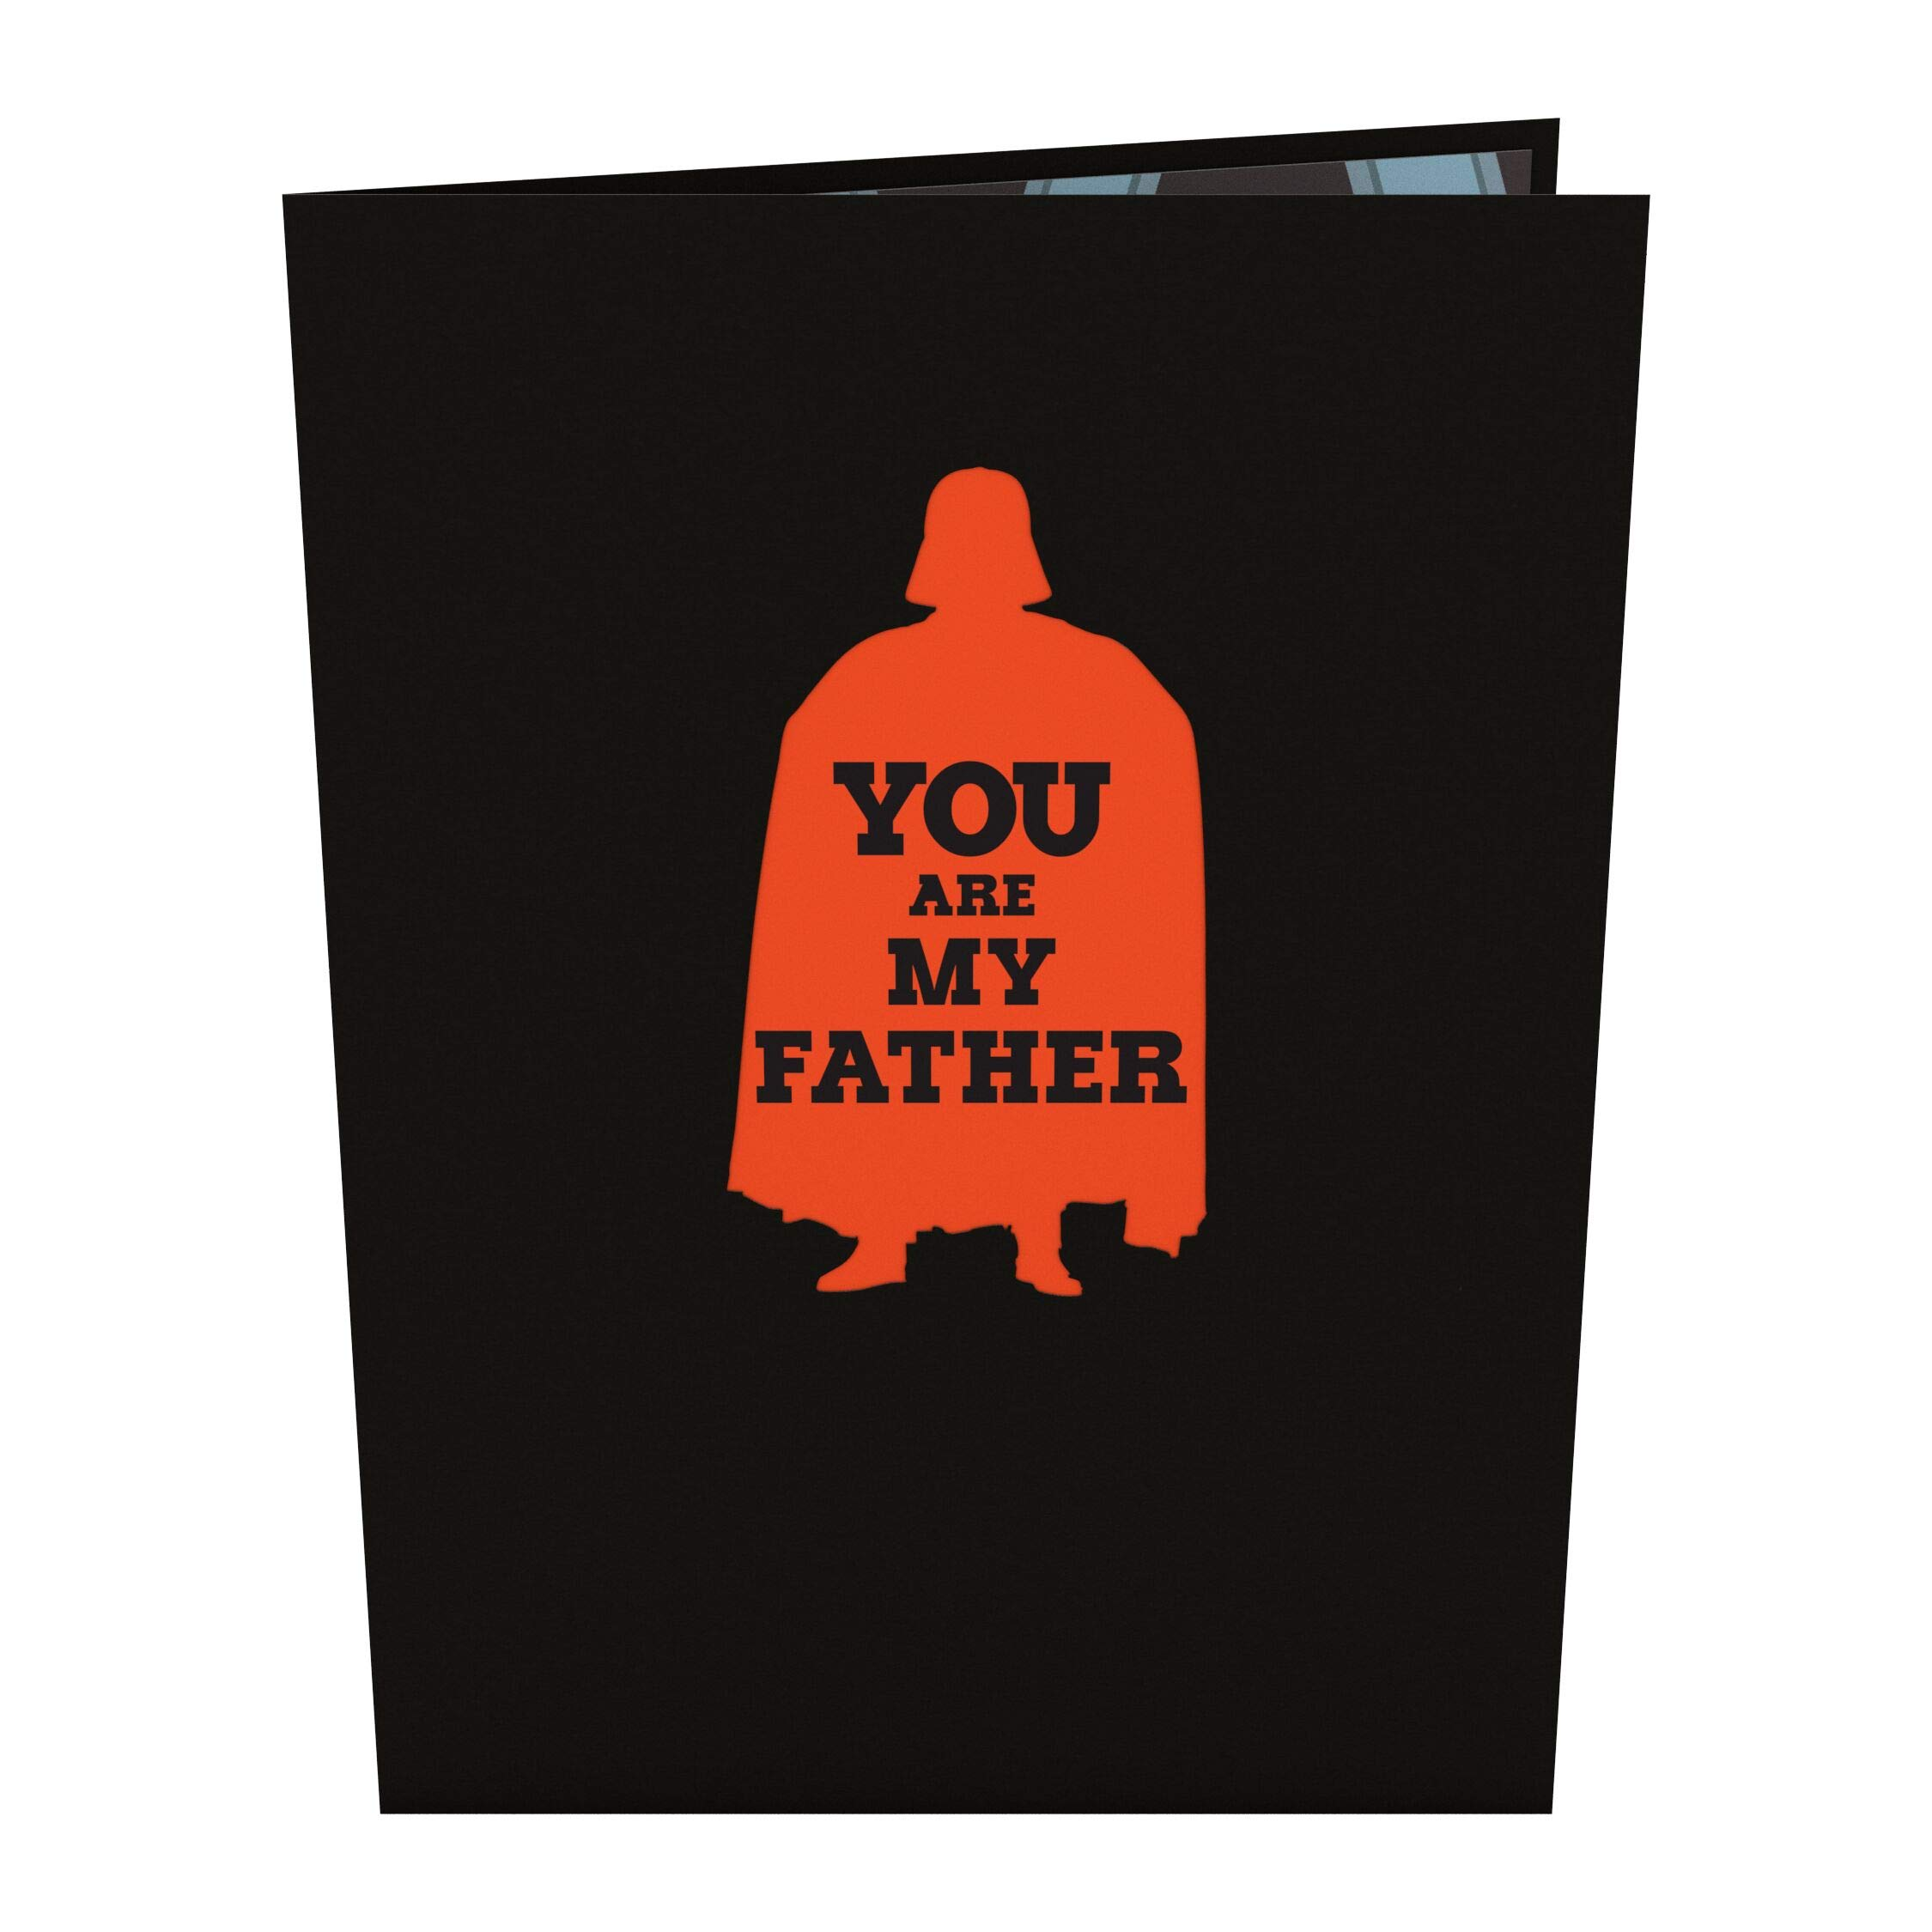 Lovepop Star Wars Darth Vader Best Dad Pop Up Card, Father's Day Card, Greeting Card, Dad Card, 3D Cards, Birthday Card, Greeting Card, Card for Dad by Lovepop (Image #2)